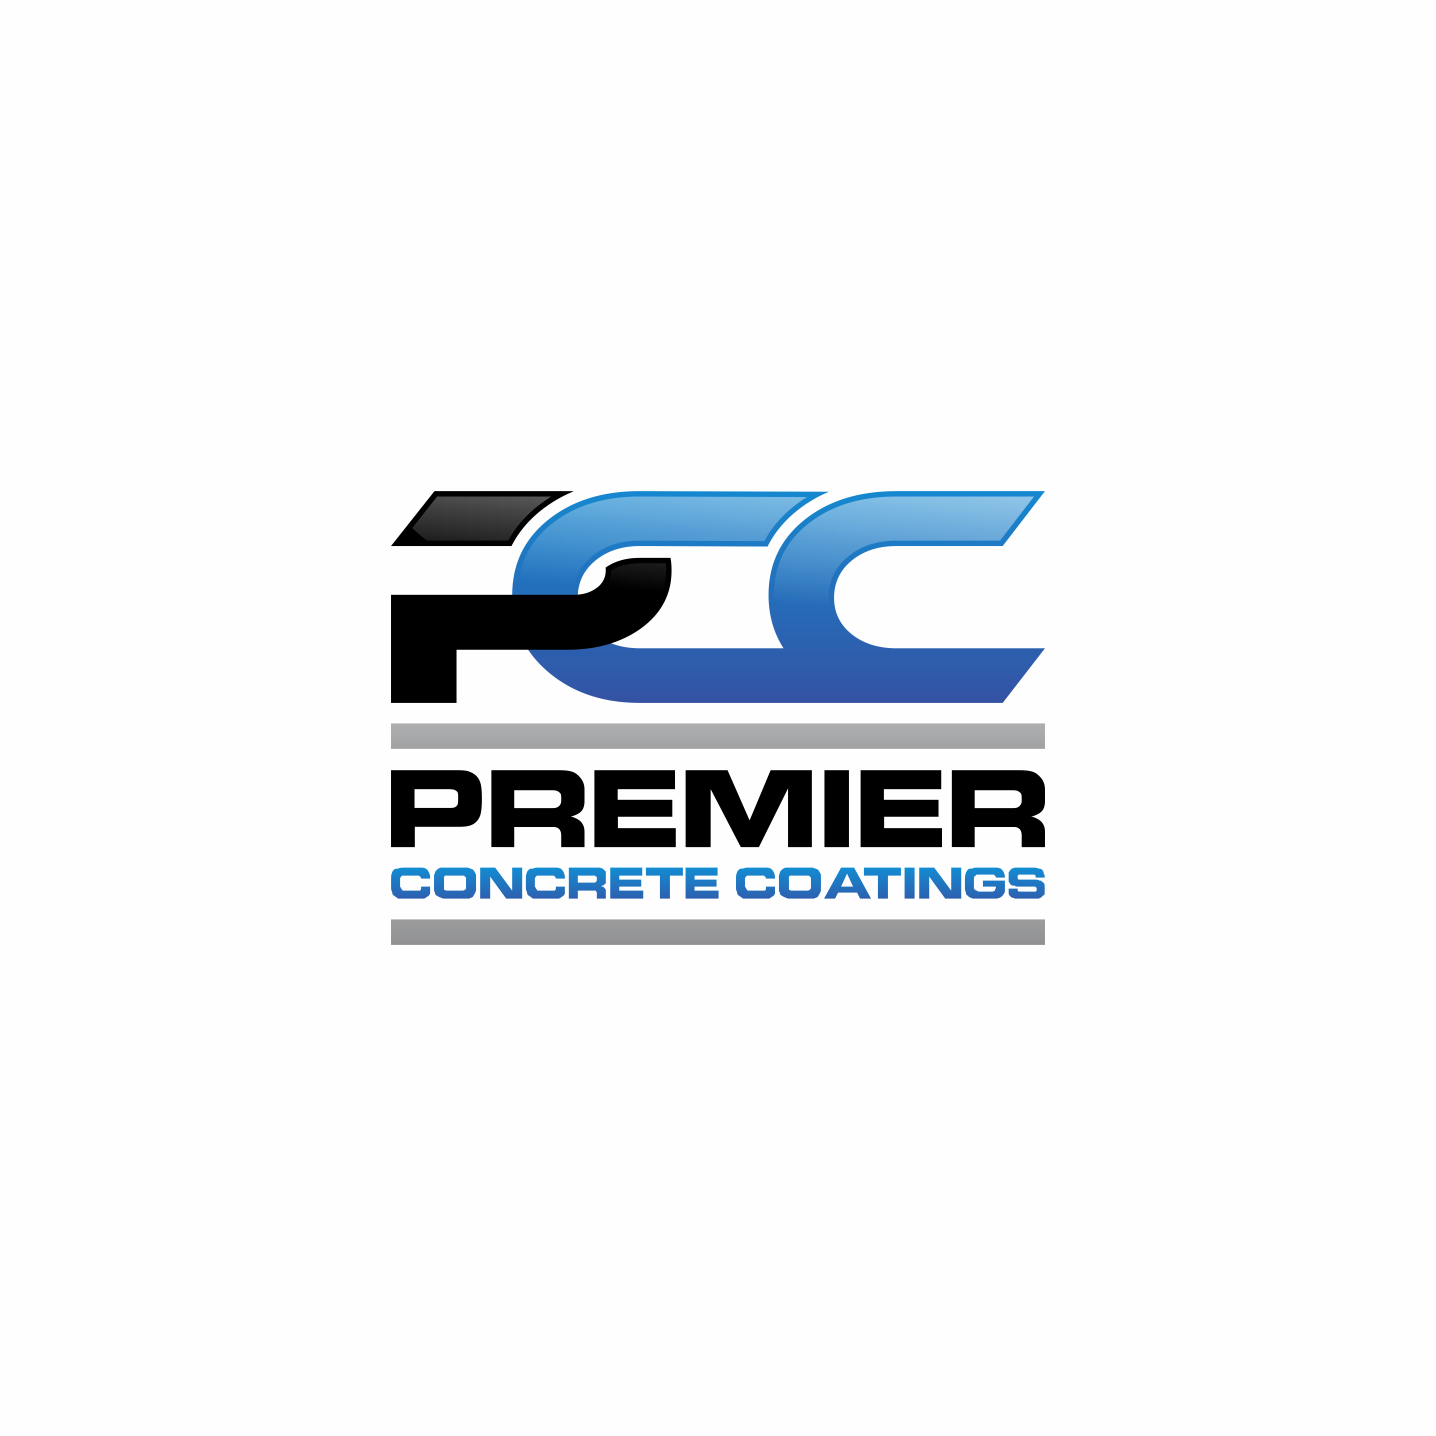 Premier Concrete Coatings